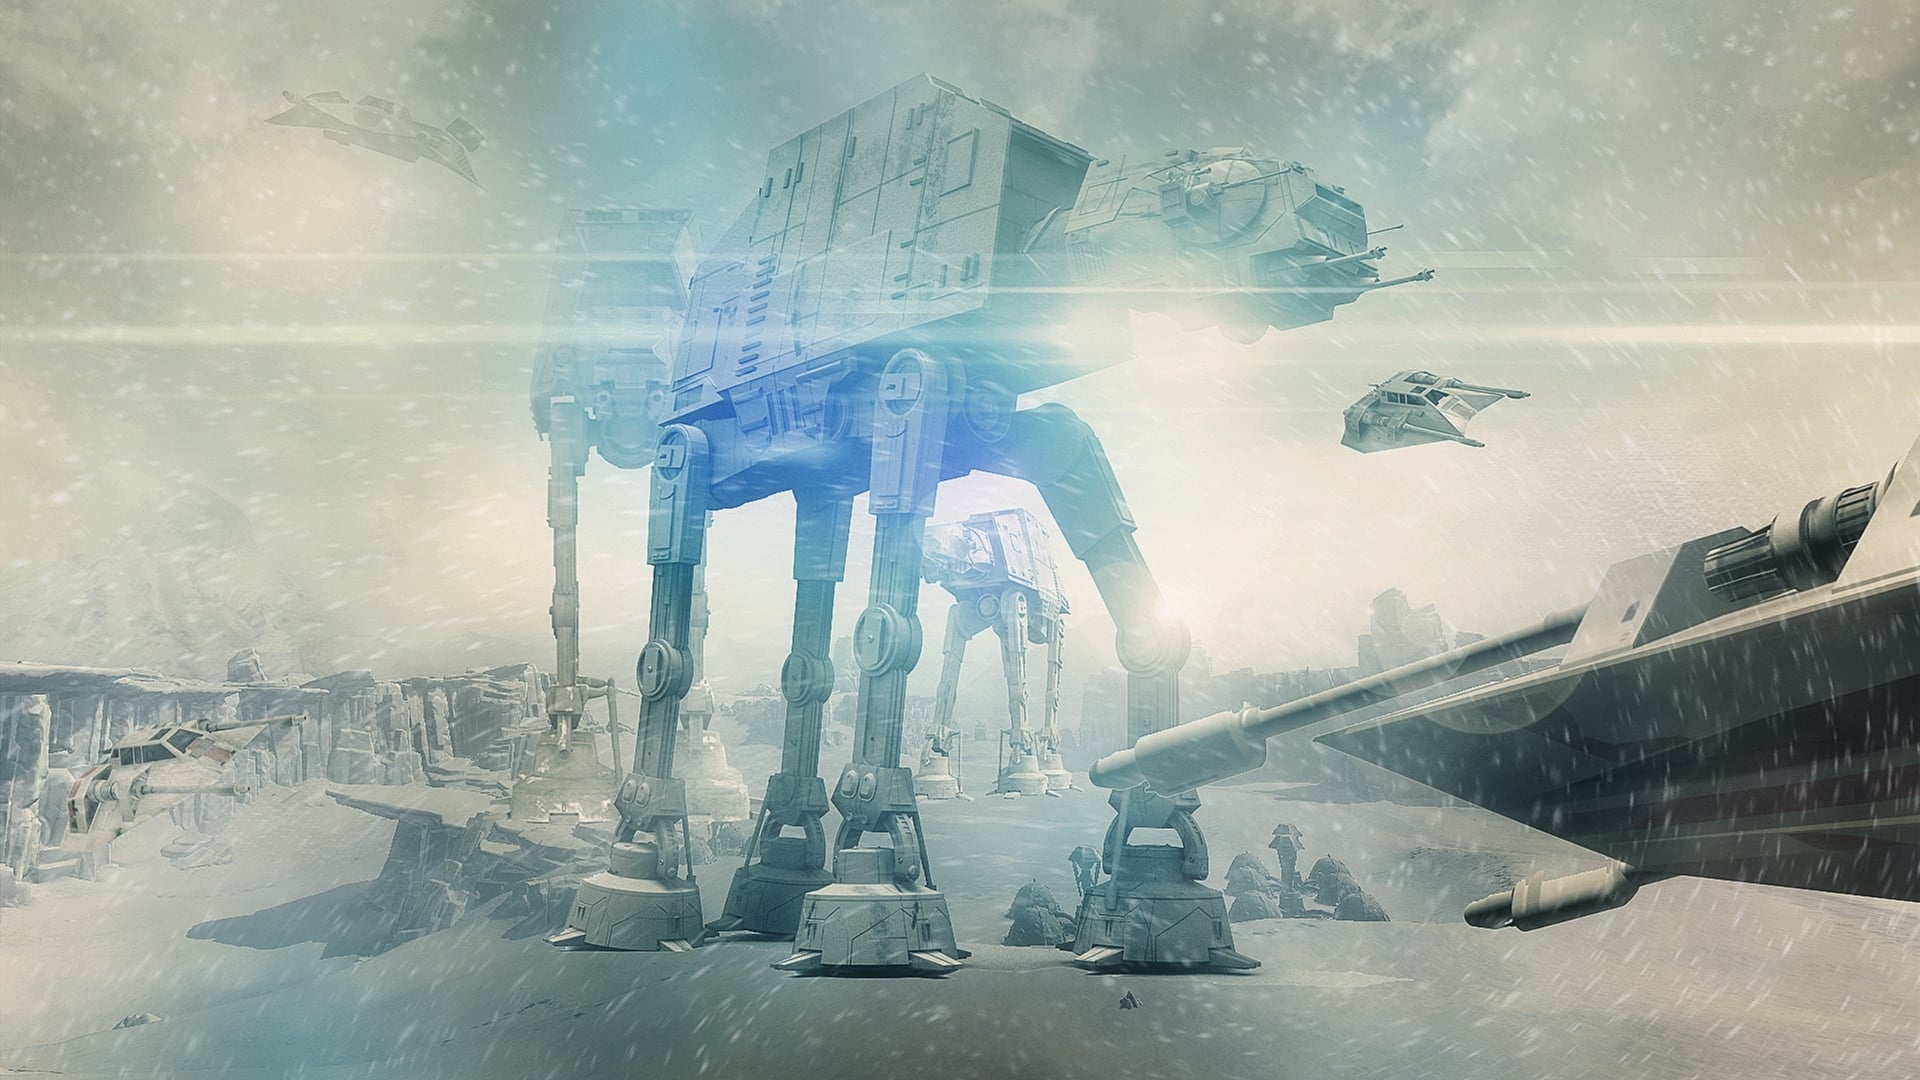 the empire strikes back counterrevolutionary strategies The empire strikes back: counterrevolutionary strategies for industry leaders  it wove together several counterrevolutionary strategies to dampen the threat from craft beers in the 1990s and.